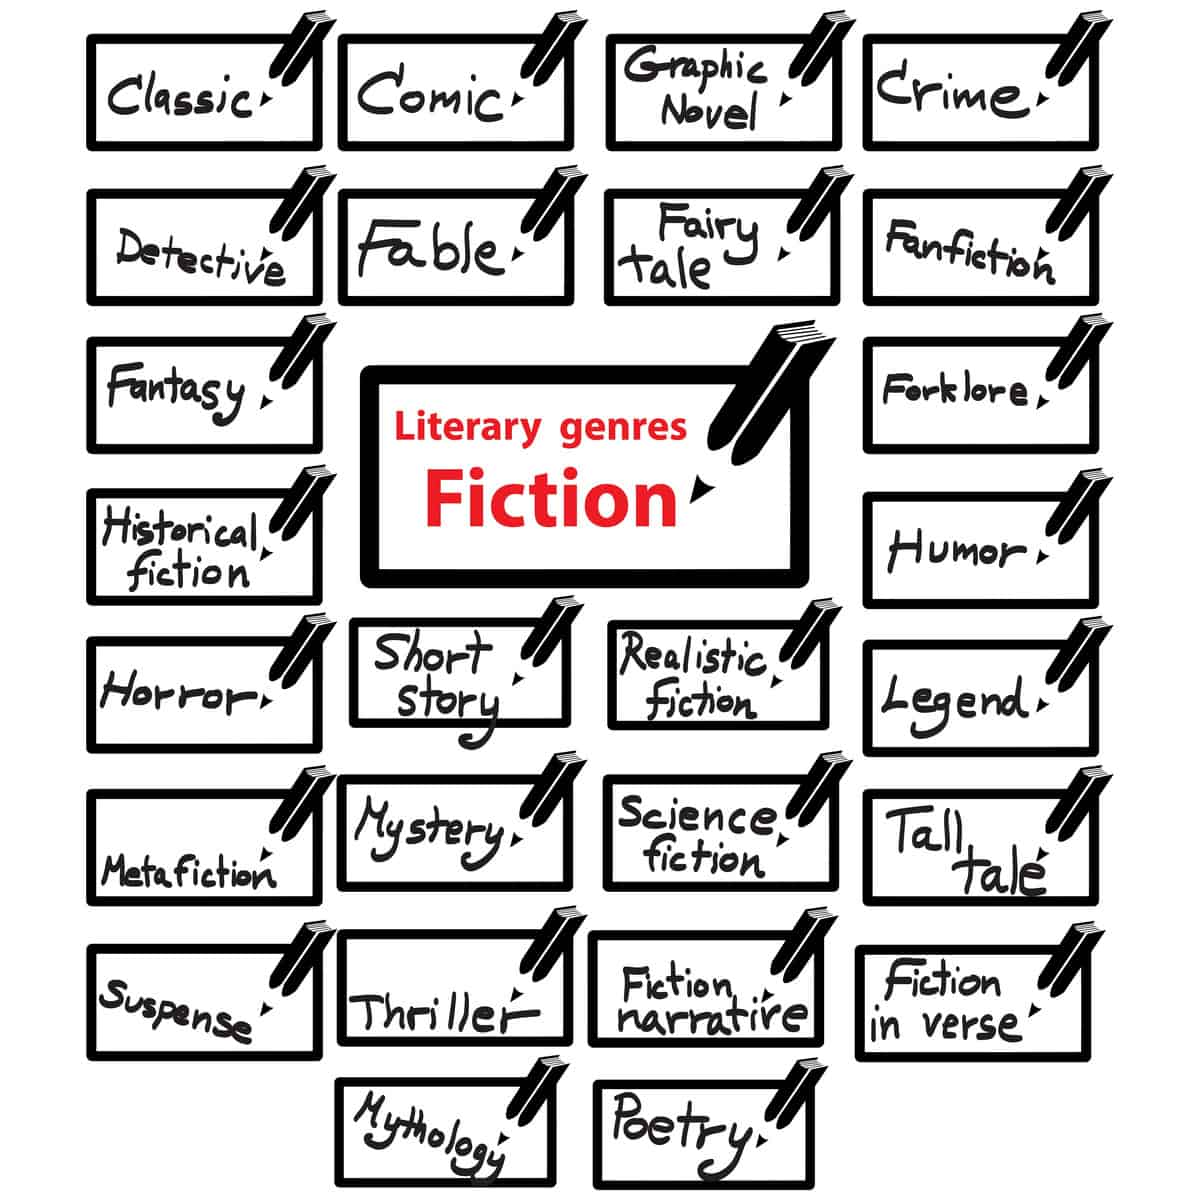 22 Different Types Of Books Genres And Non Fiction Options